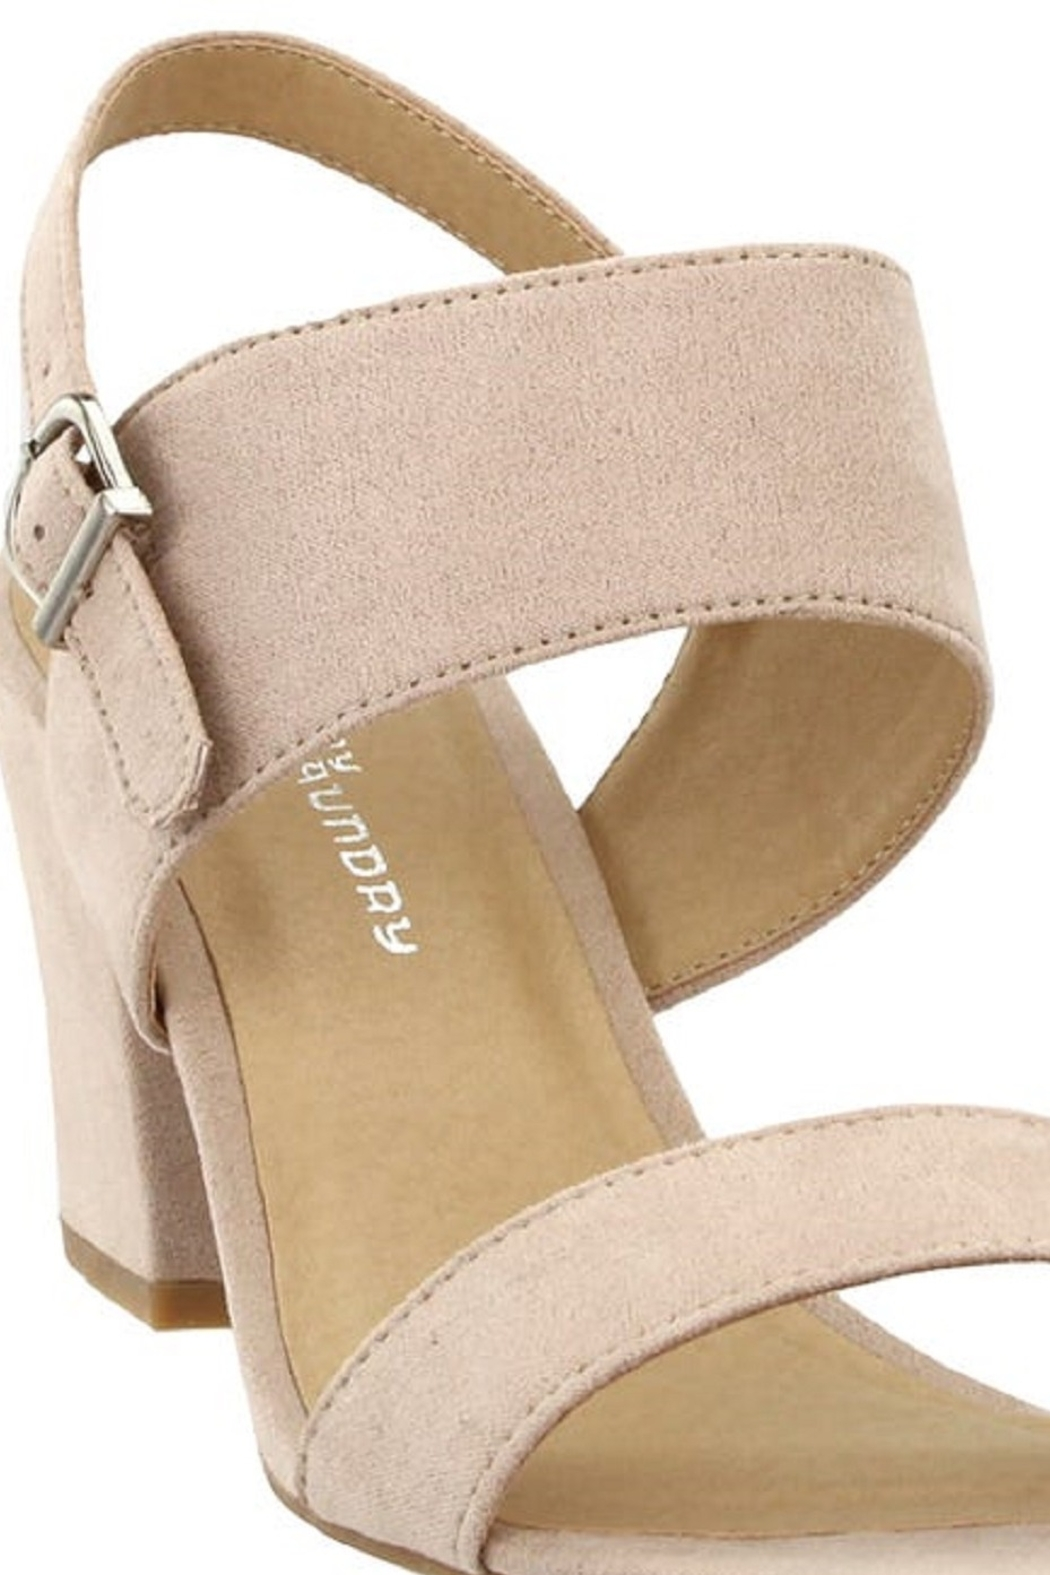 Chinese Laundry Spot On Nude Suede Heel - Back Cropped Image